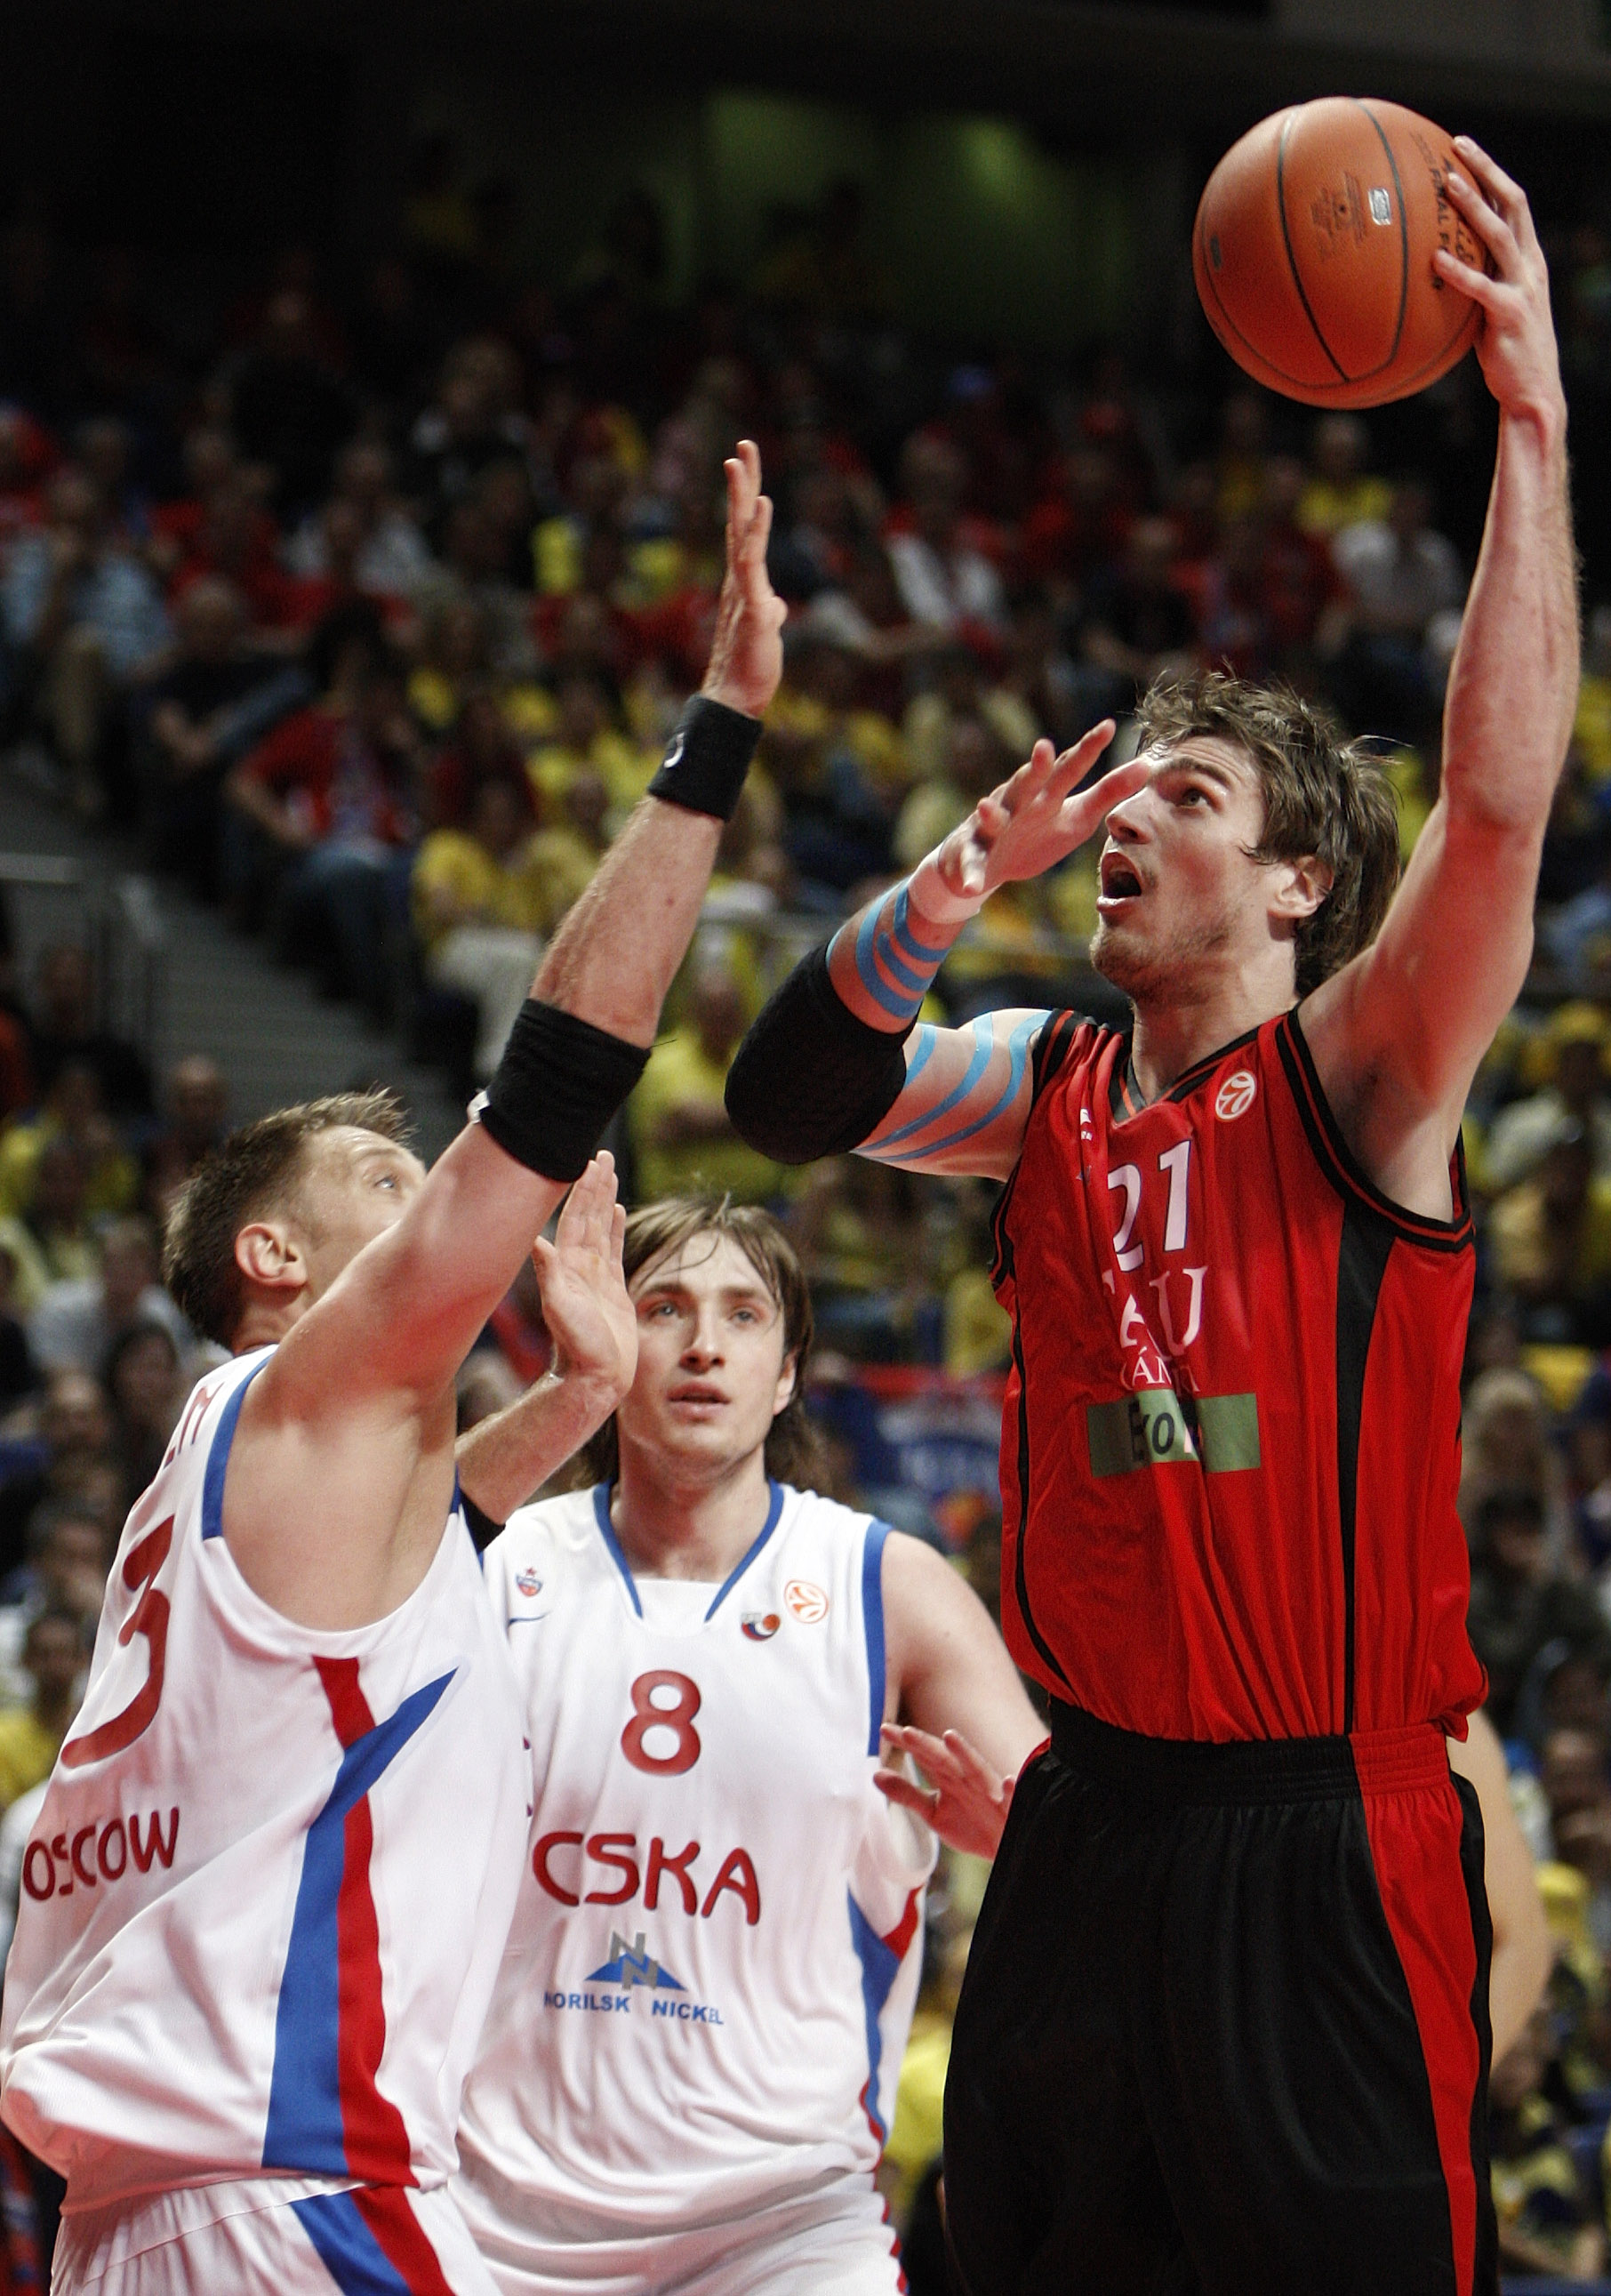 MADRID, SPAIN - MAY 02:   David Andersen (L) and Matjaz Smodis (C) of CSKA Moscow try to block Tiago Splitter (R) of Tau Ceramica during the Euroleague Final Four Semi Final basketball match between Tau Ceramica and CSKA Moscow at the Palacio de Deportes